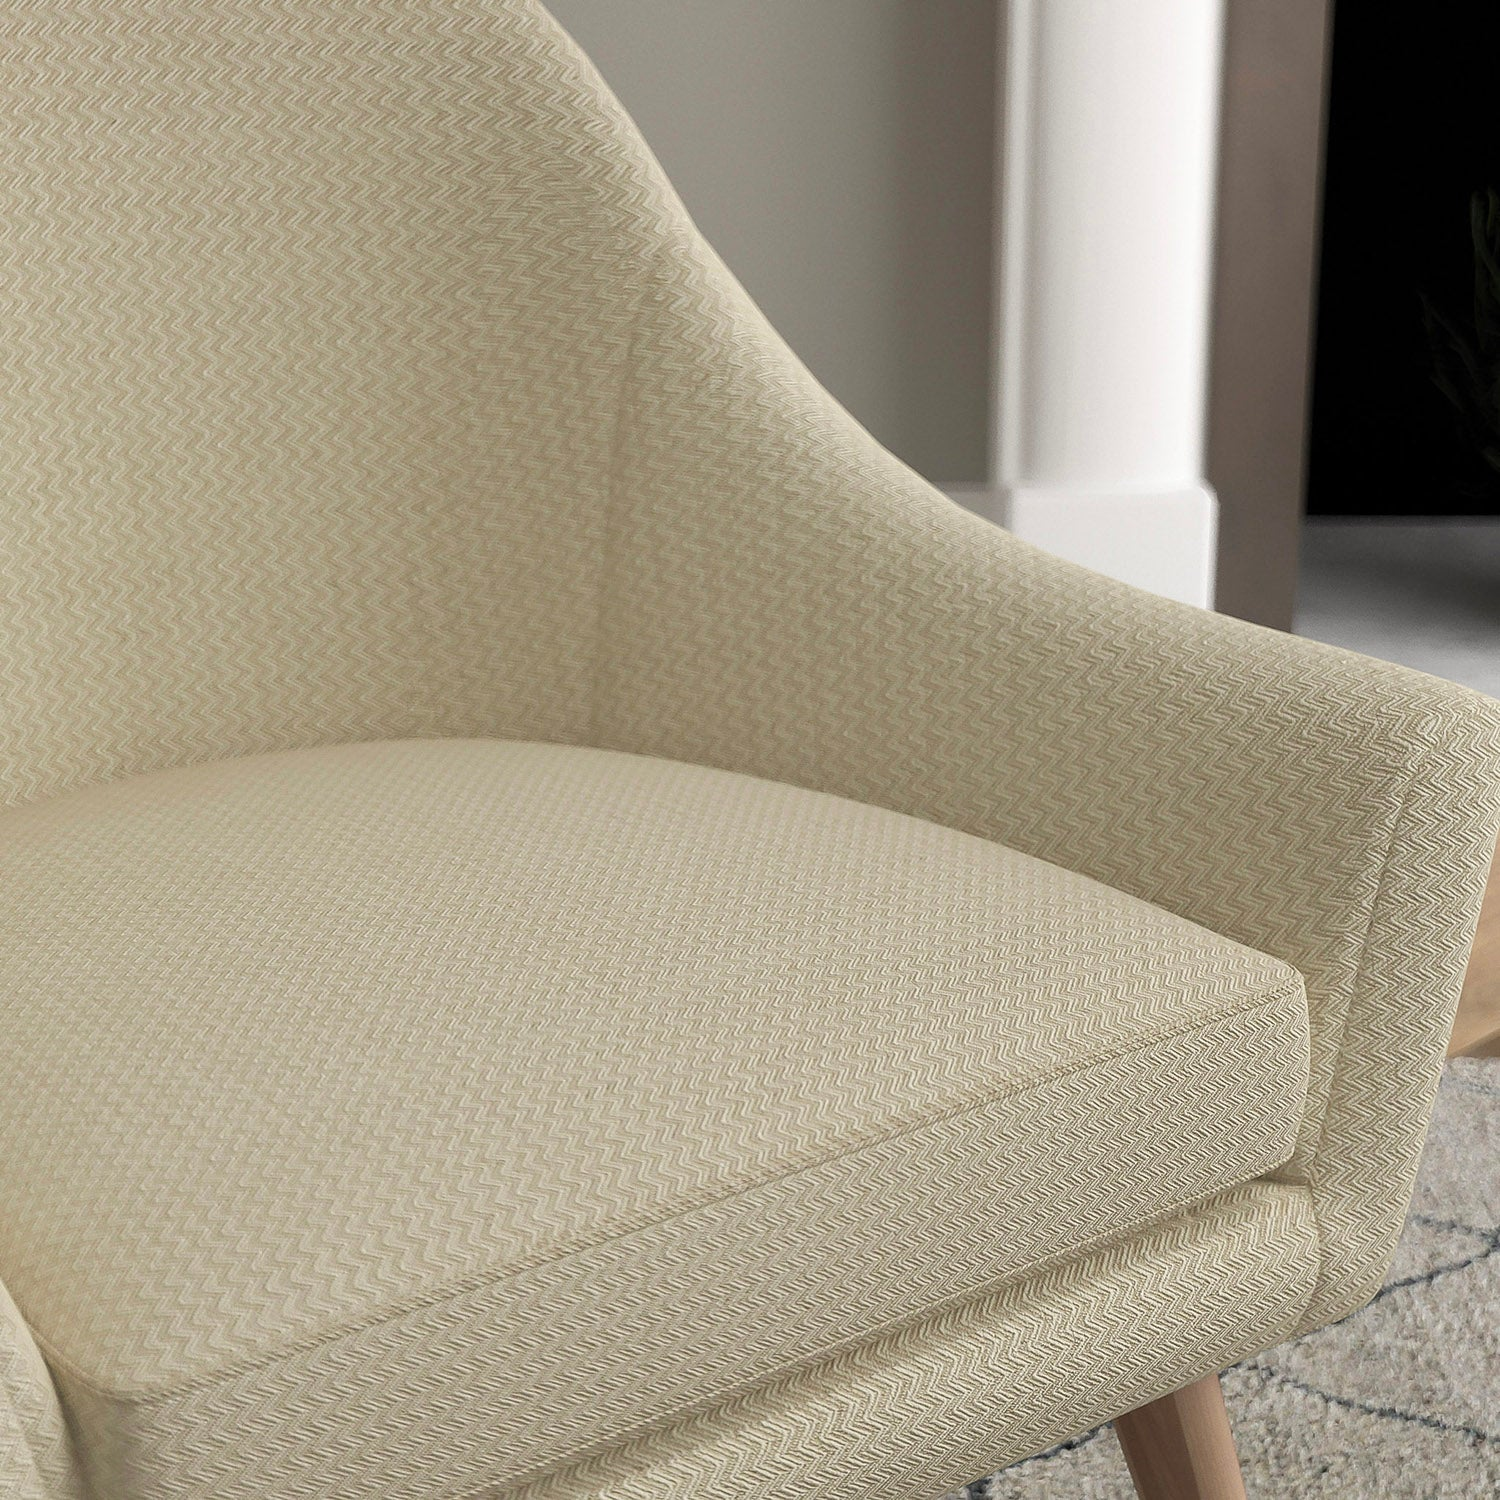 Chair with a oatmeal and neutral upholstery fabric with a chevron weave fabric